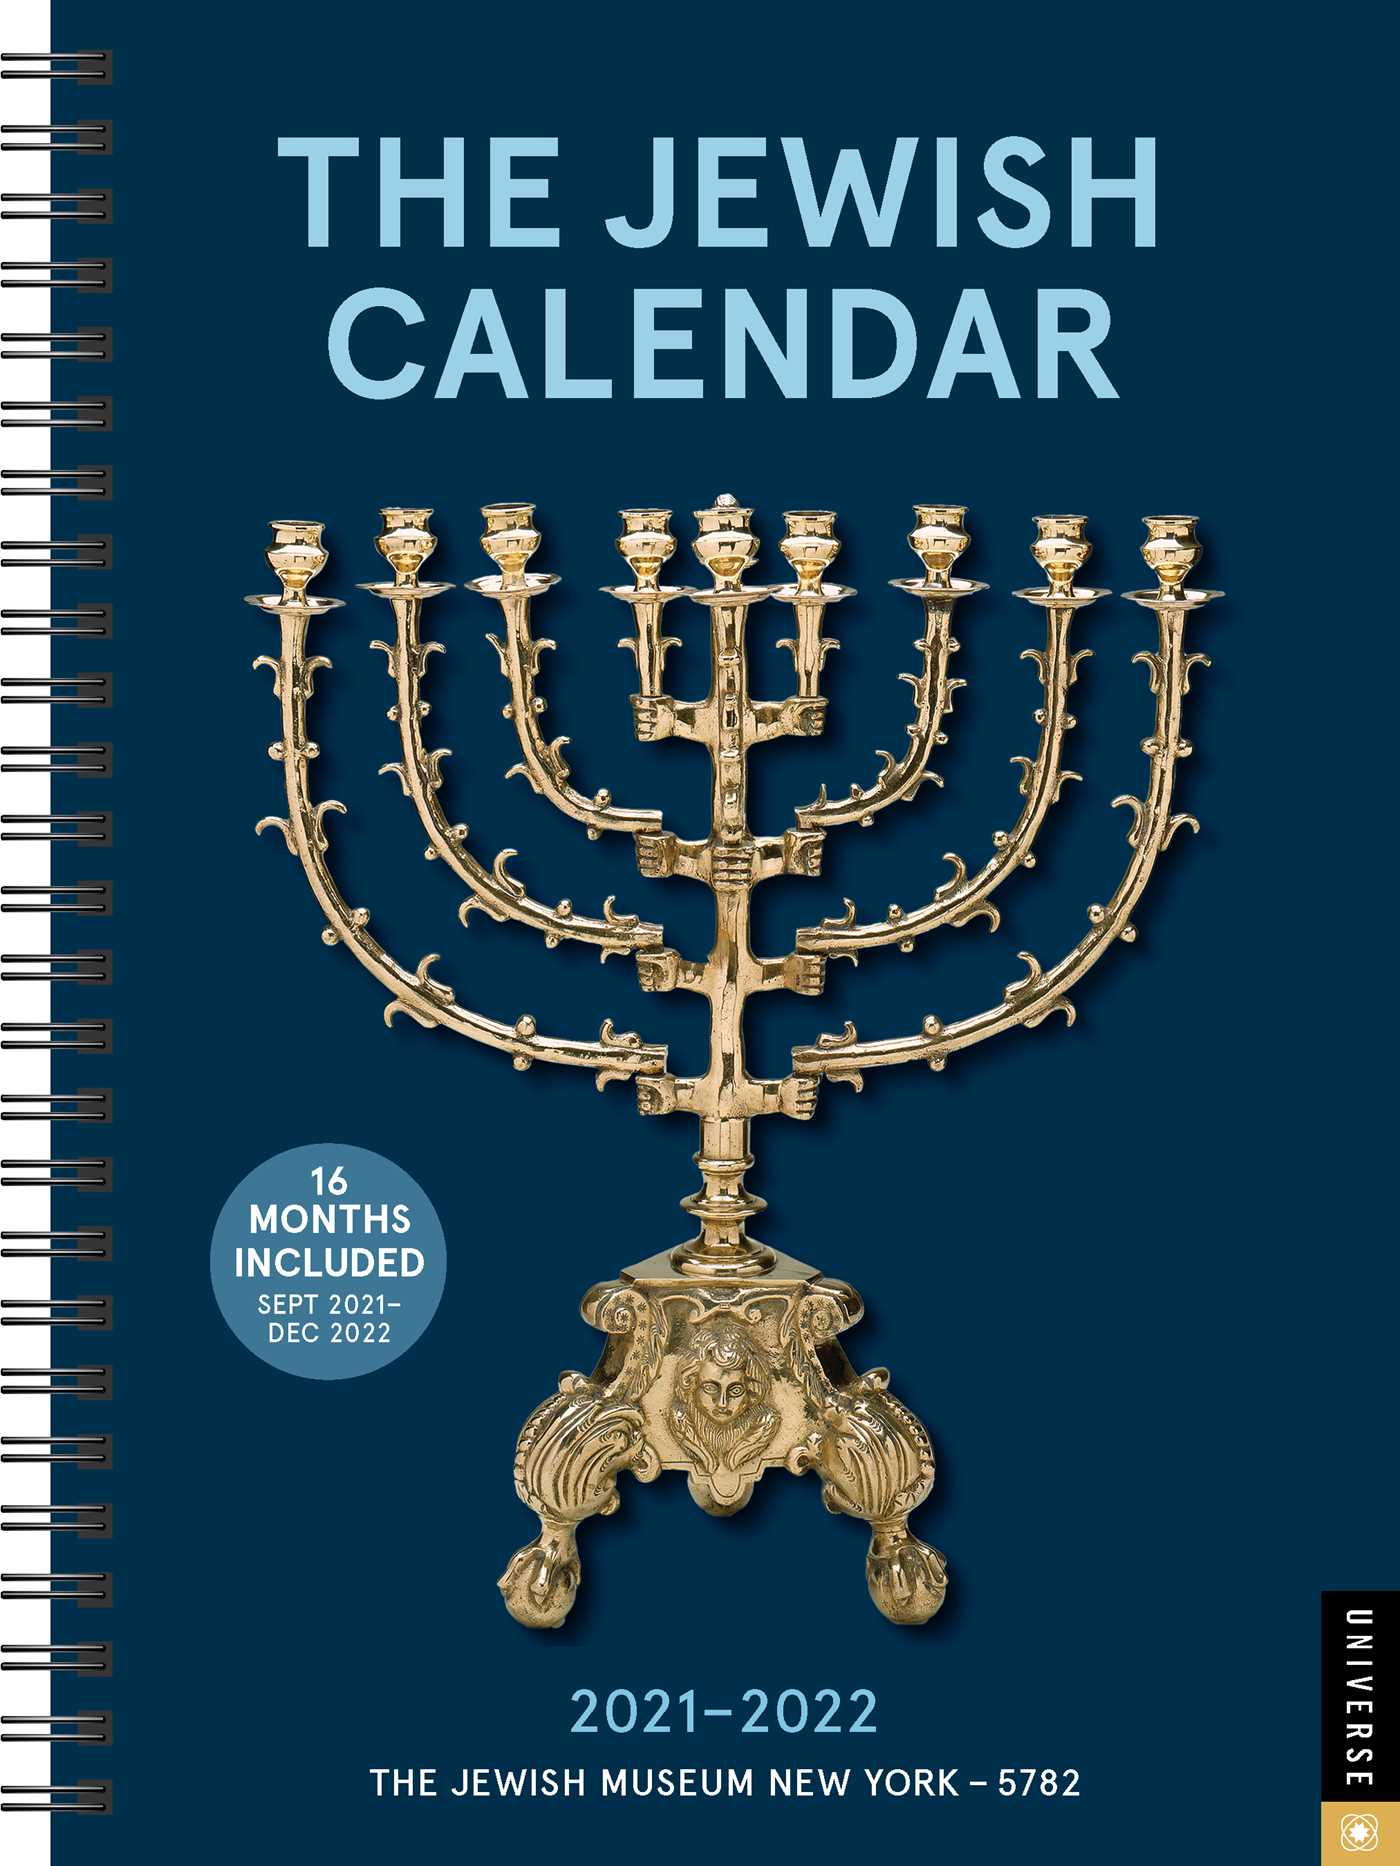 Jewish Calendar 2022 Chabad.The Jewish Calendar 16 Month 2021 2022 Engagement Calendar Book Summary Video Official Publisher Page Simon Schuster